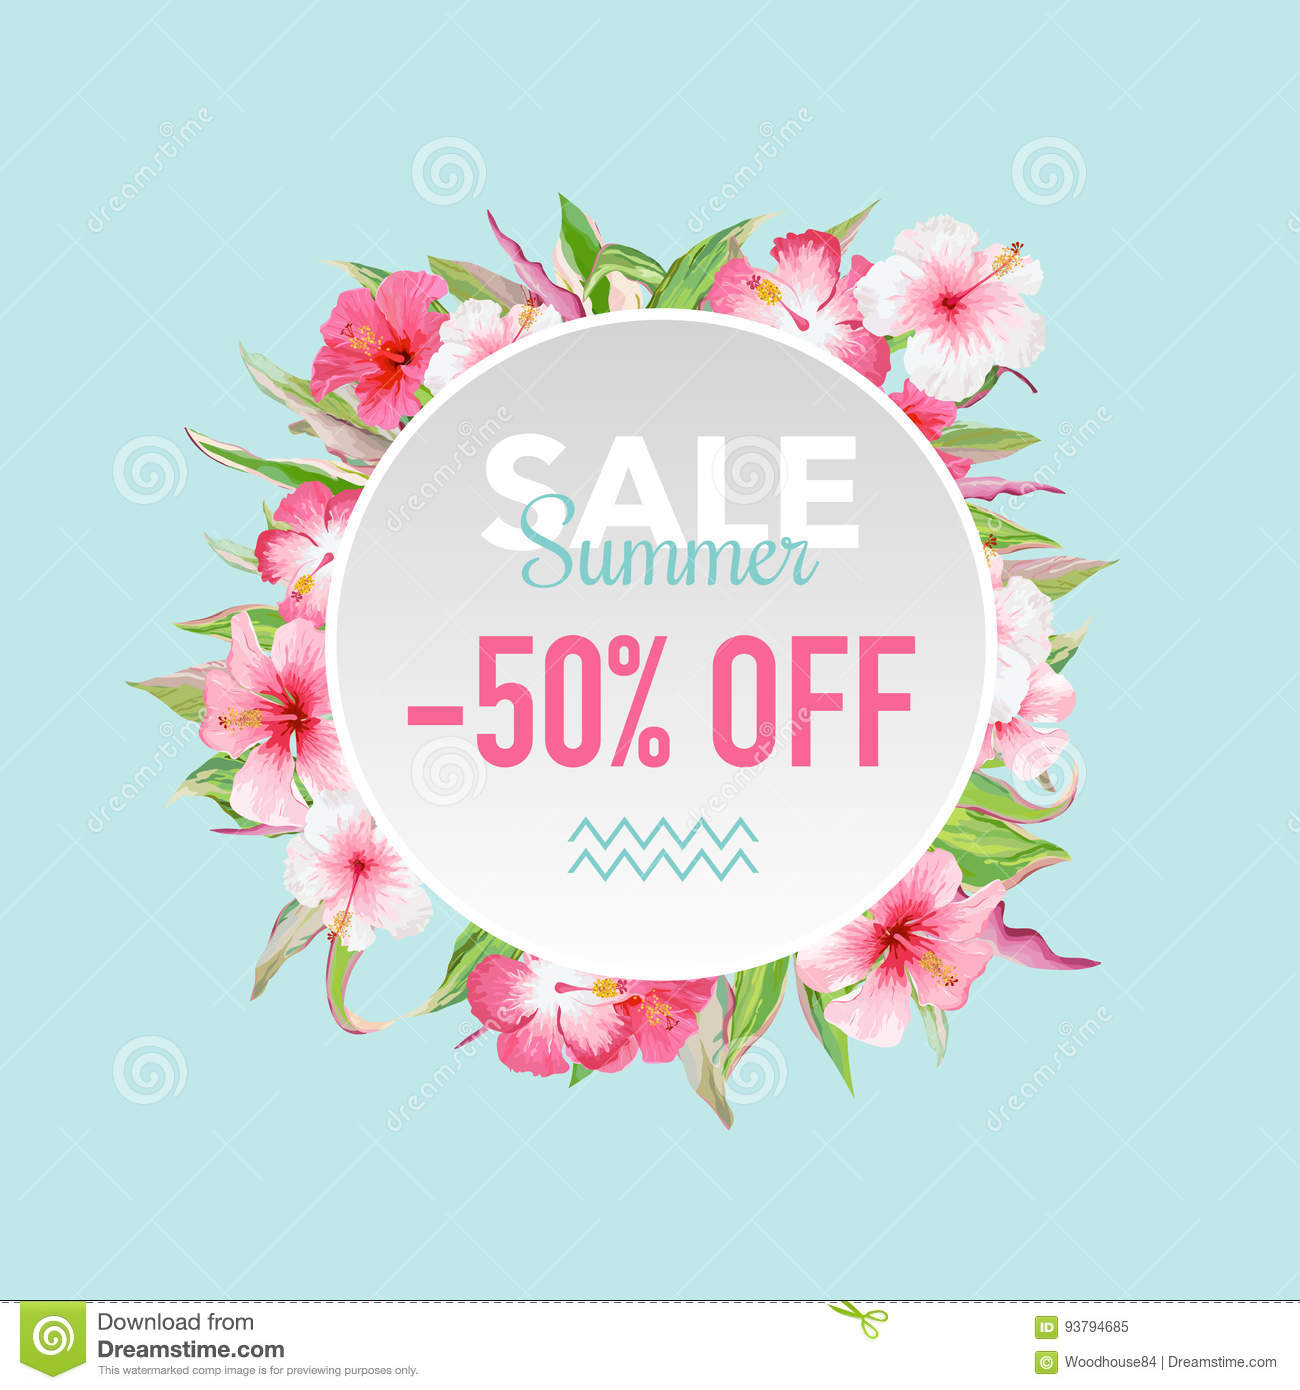 Summer sale tropical flowers banner for discount poster fashion summer sale tropical flowers banner for discount poster fashion sale market offer izmirmasajfo